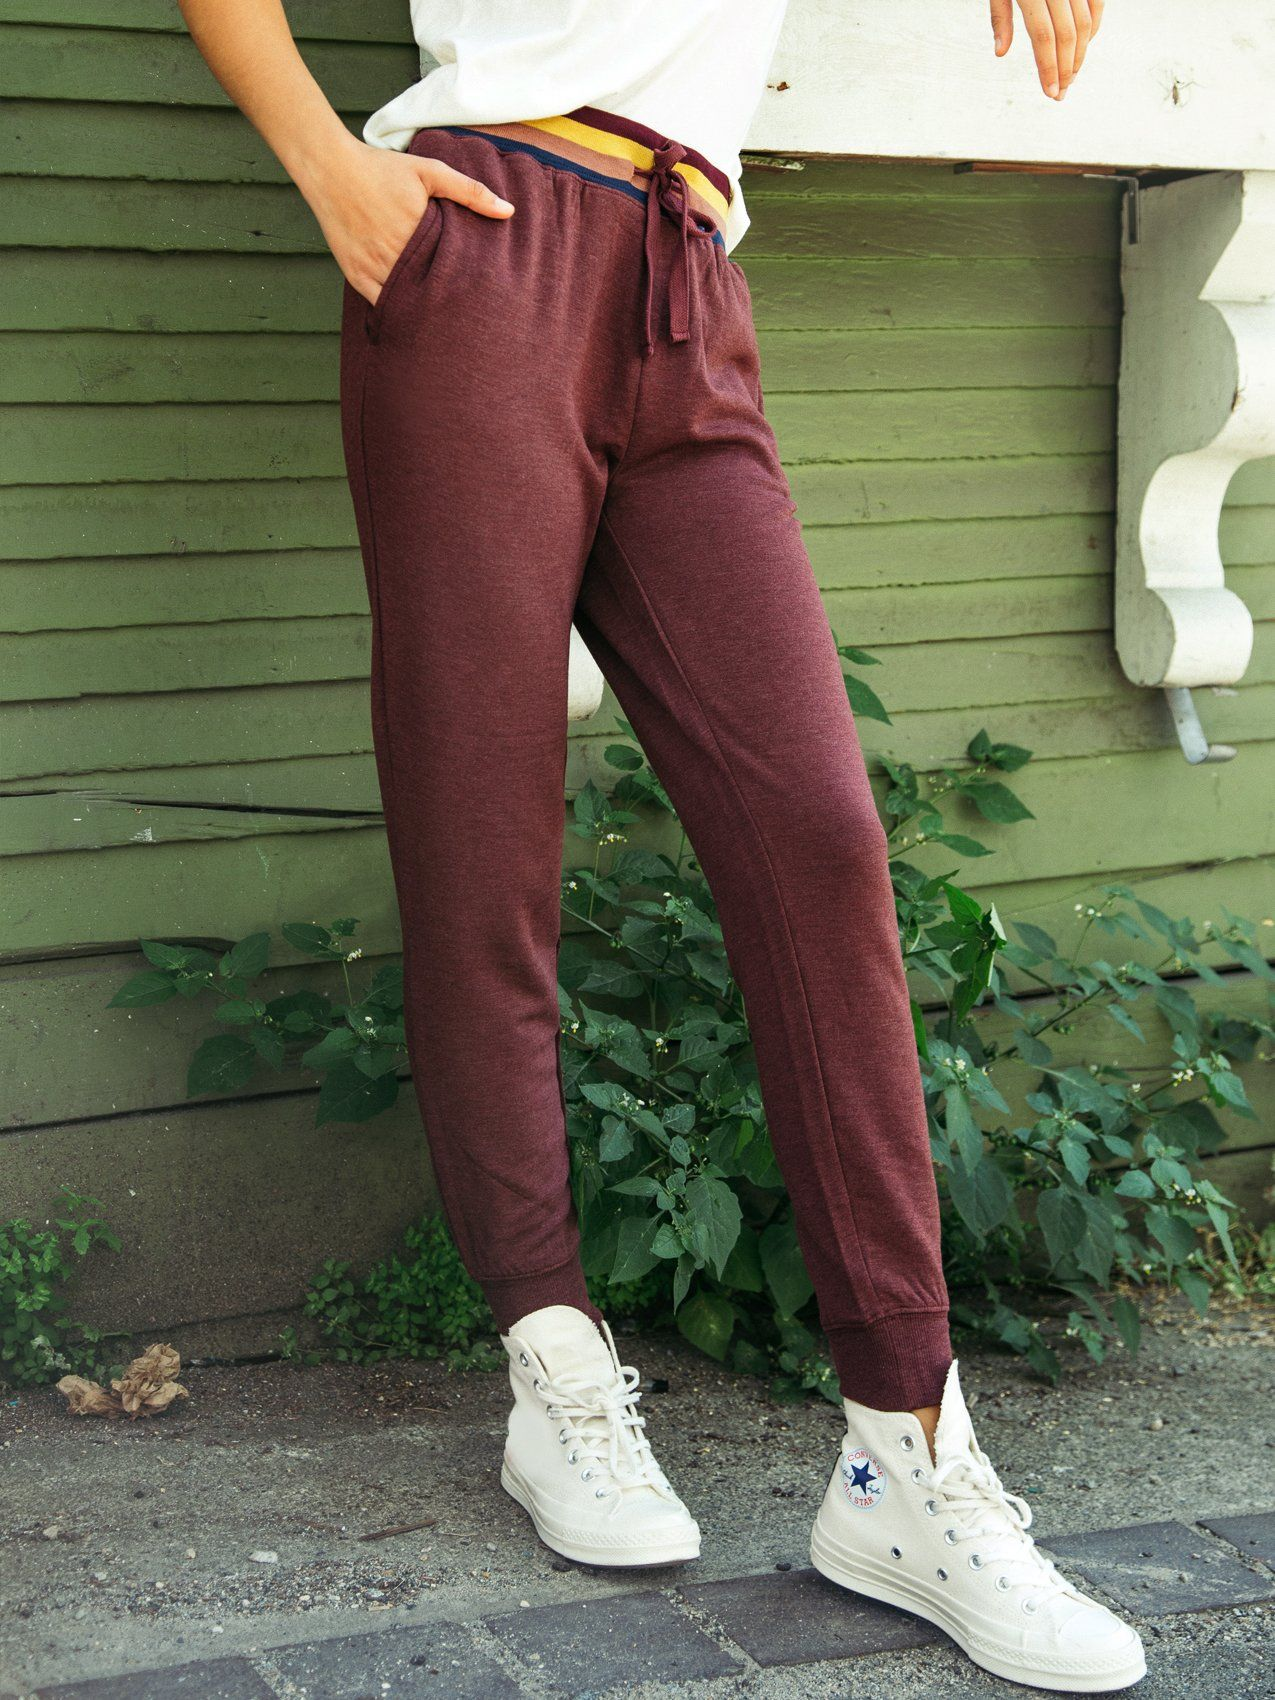 Moxie Jogger Thread & Supply Bordeaux S